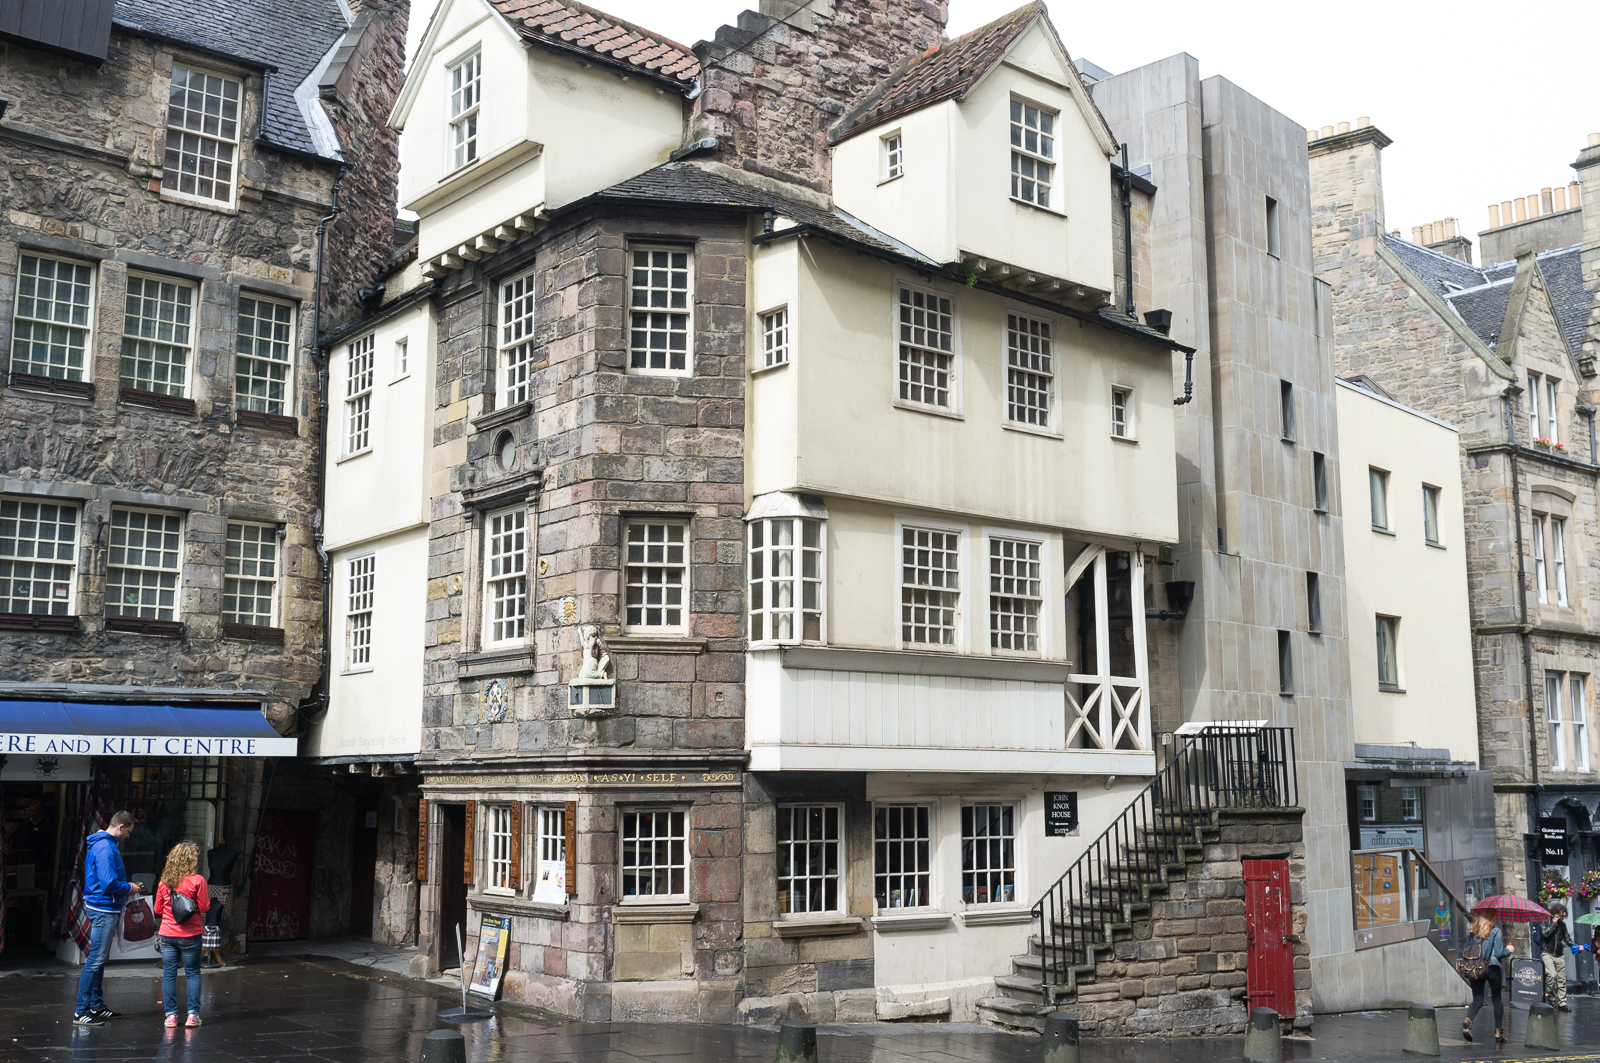 John Knox House on the Royal Mile, Edinburgh